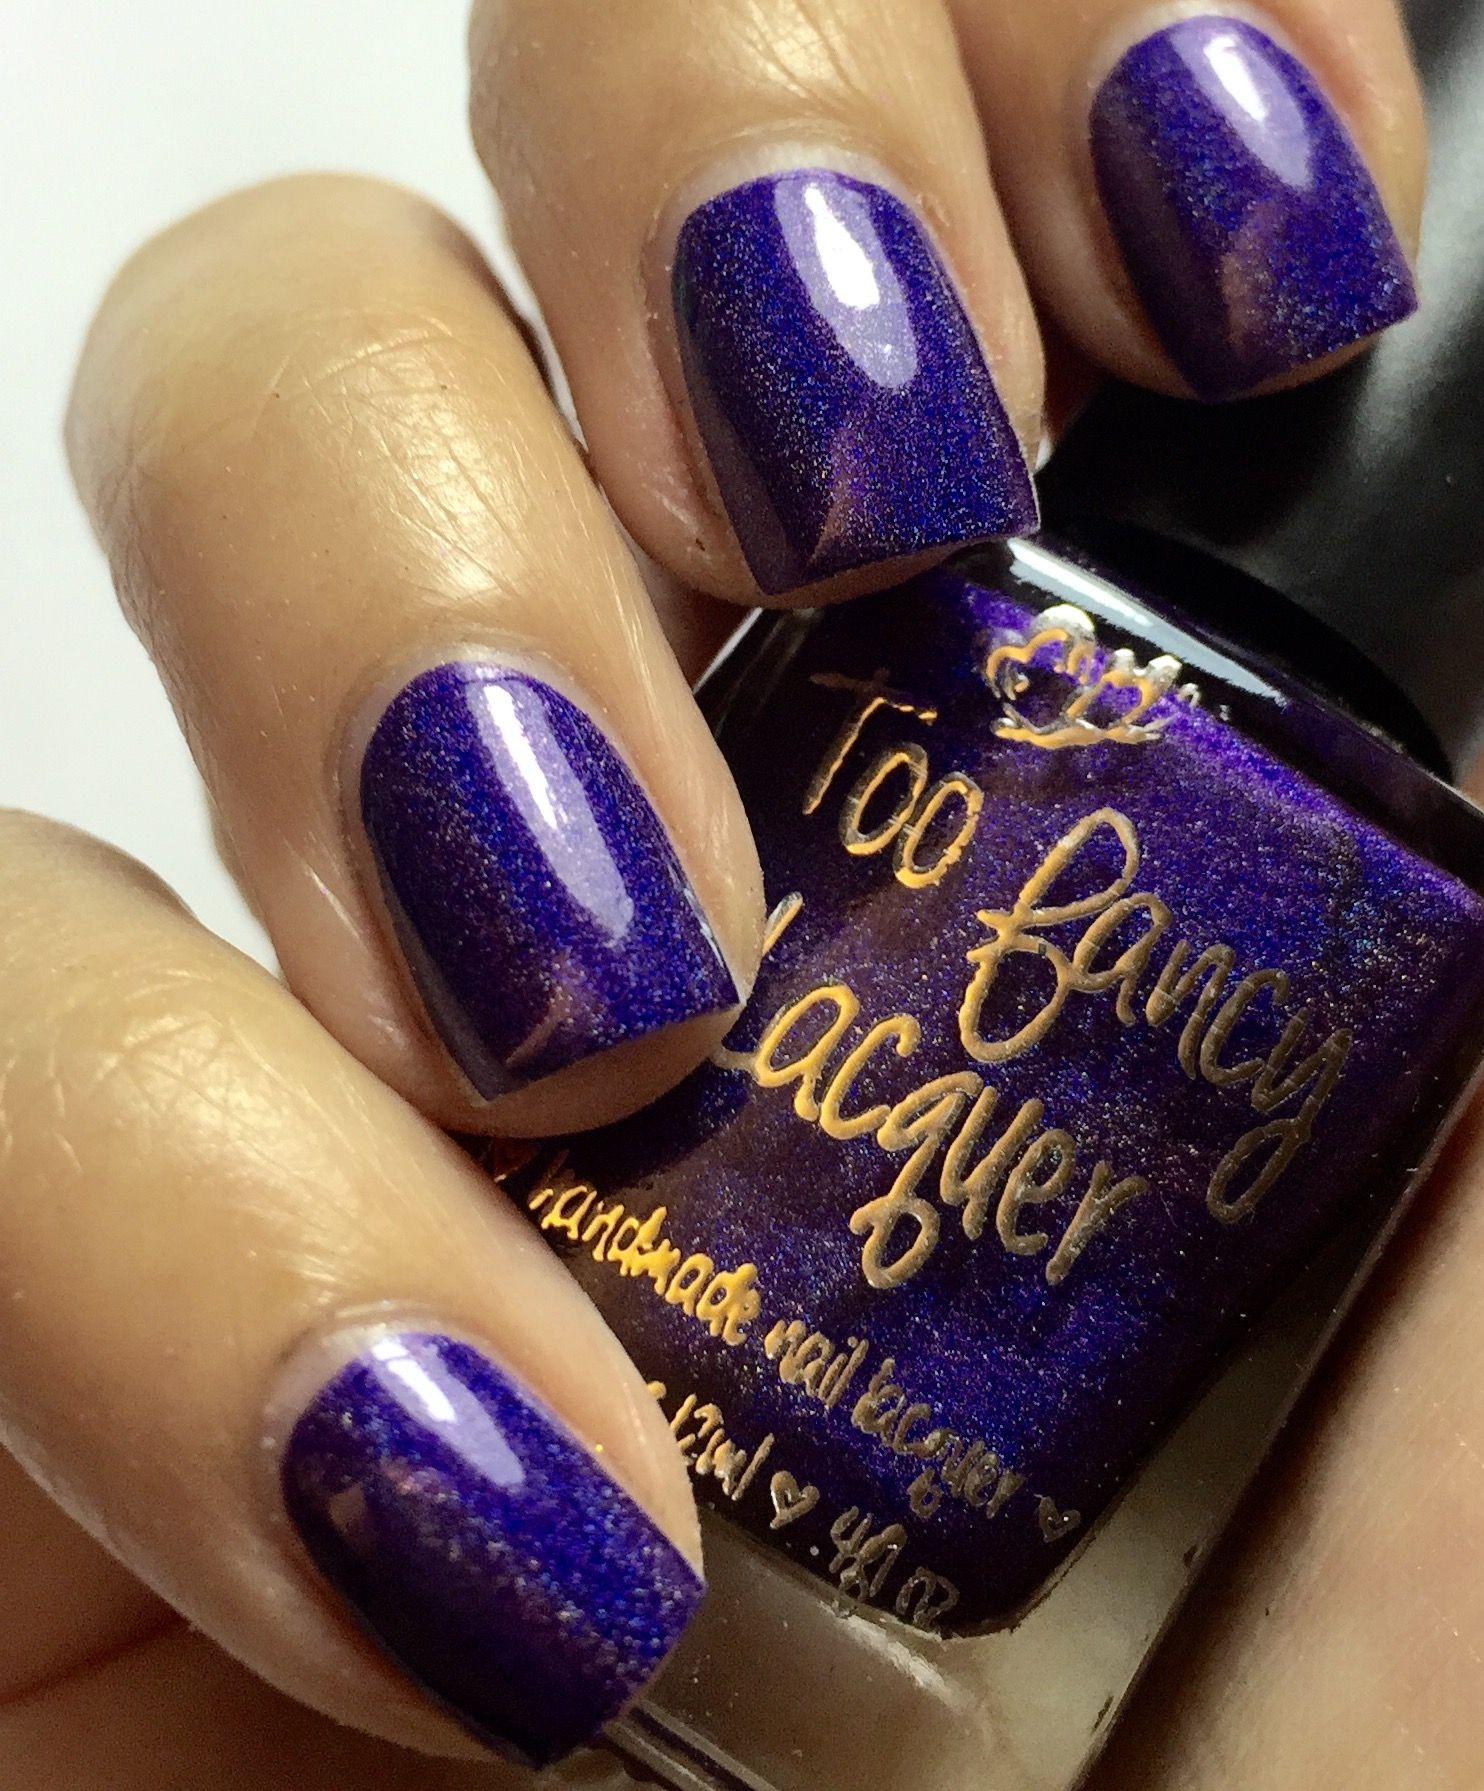 The Glow Within - violet holo with a blurple glow